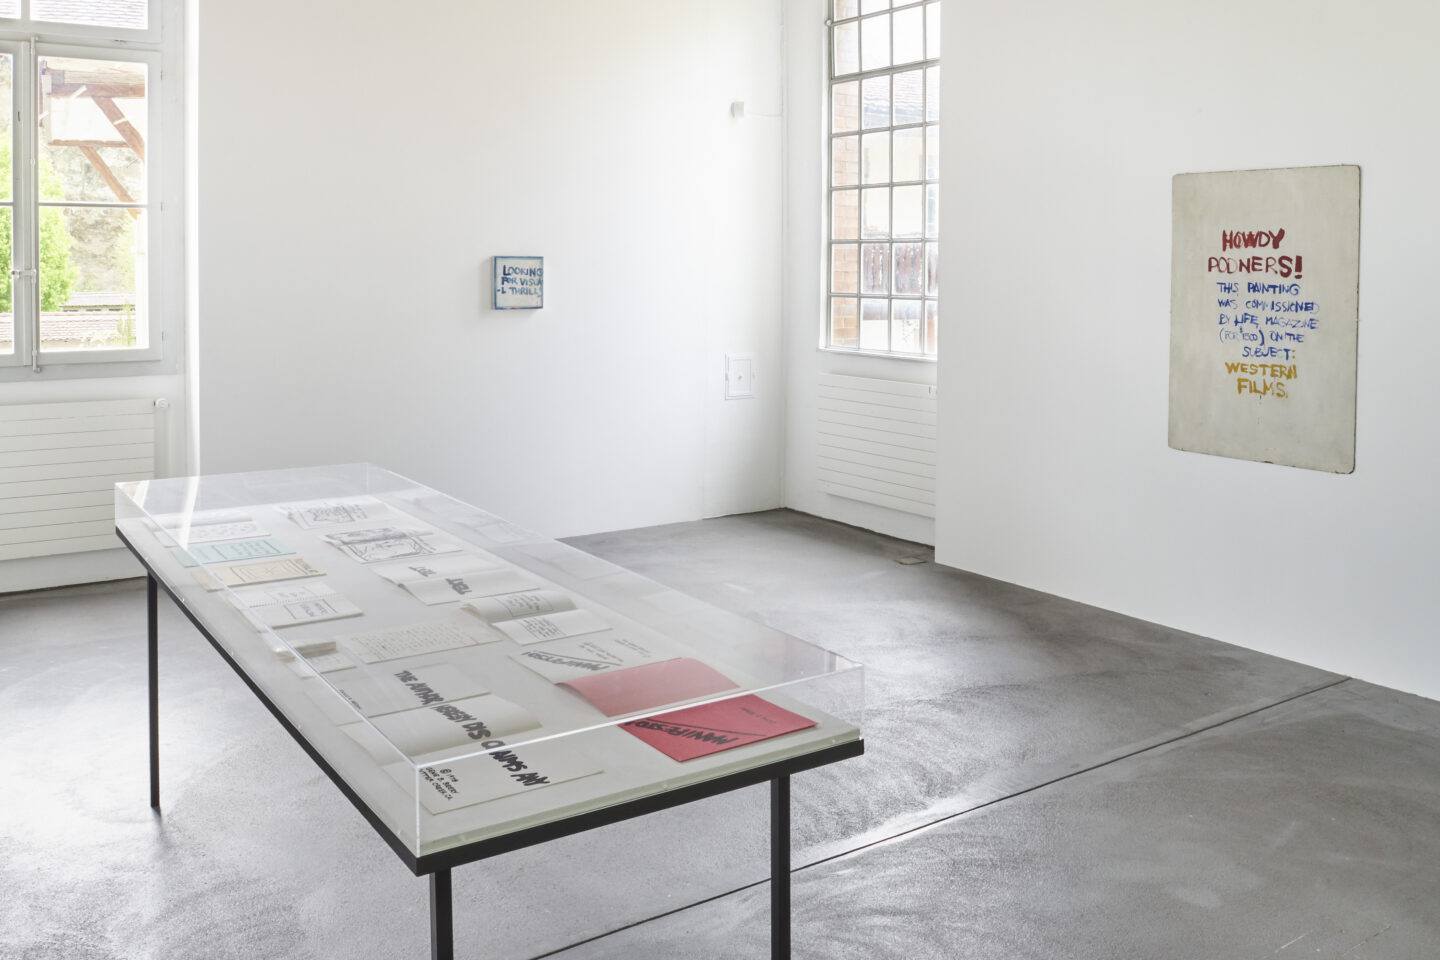 Exhibition View Gene Beery Retrospective at Fri-Art Kunsthale, Fribourg / Photo: Guillaume Baeriswyl / Courtesy: the artist